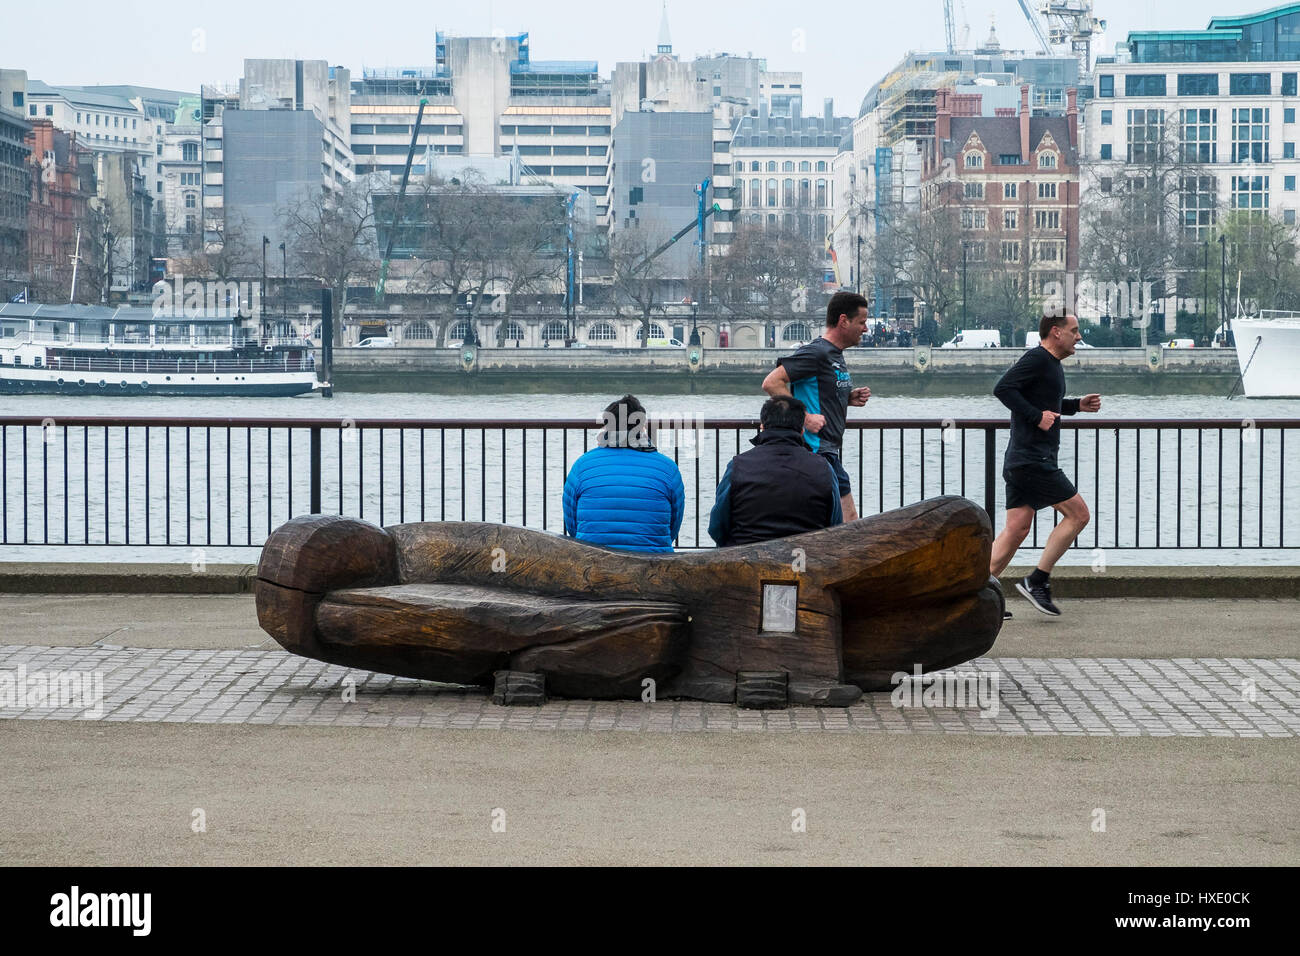 Southbank South Bank Seat People Sitting Running Runners Jogging Joggers Exercise Healthy lifestyle Leisure River - Stock Image